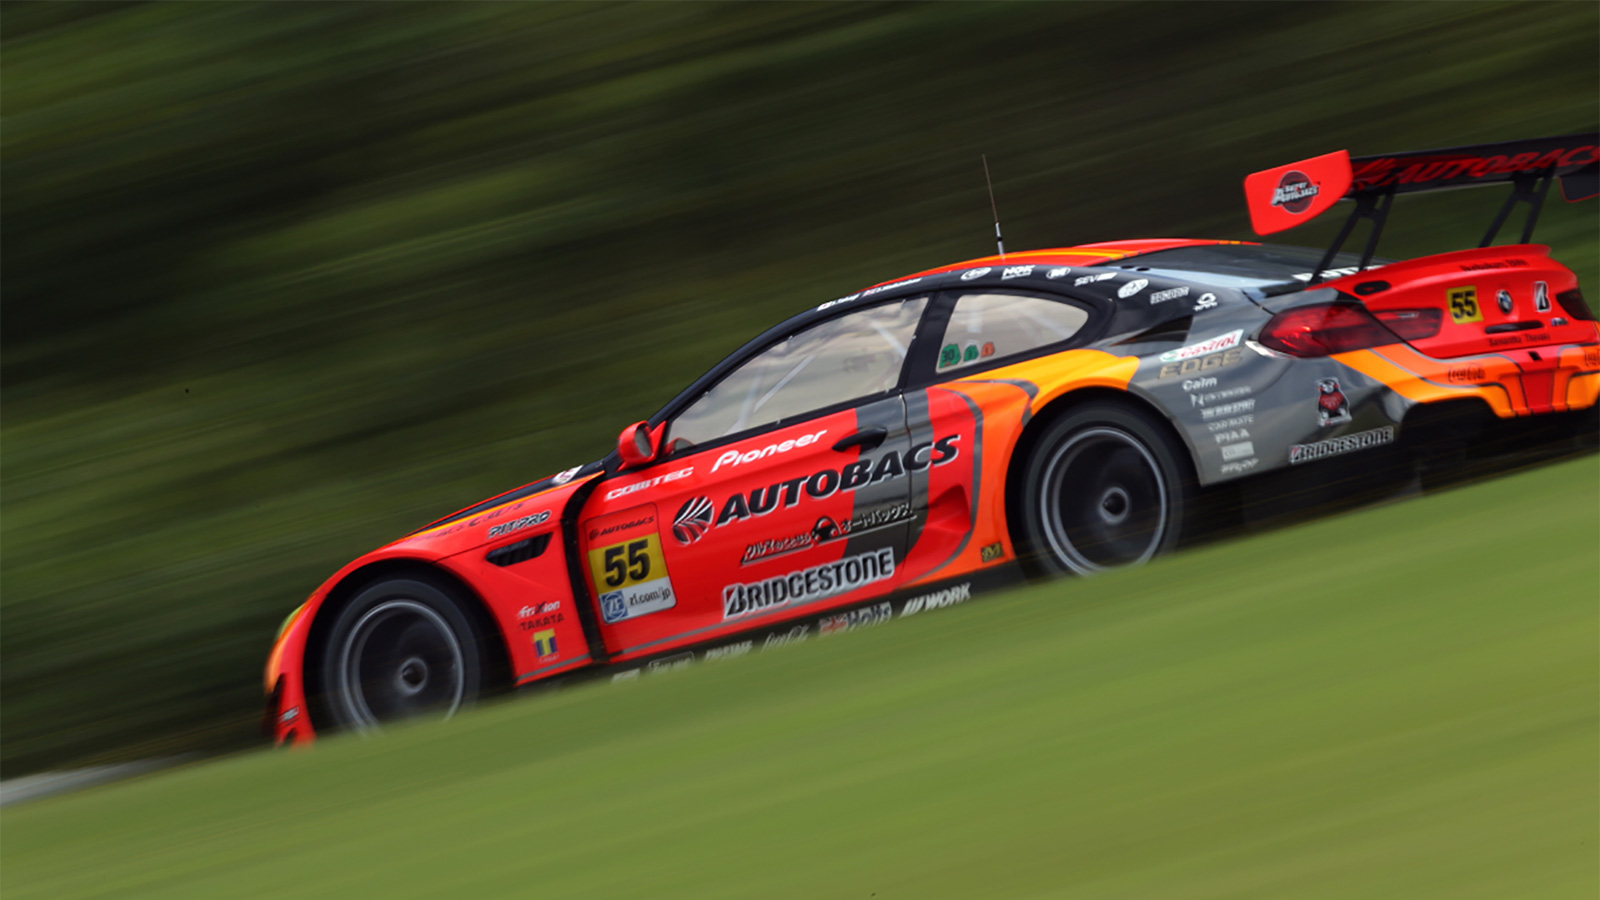 ARTA BMW drivers Walkinshaw and Takagi frustrated at Sugo.